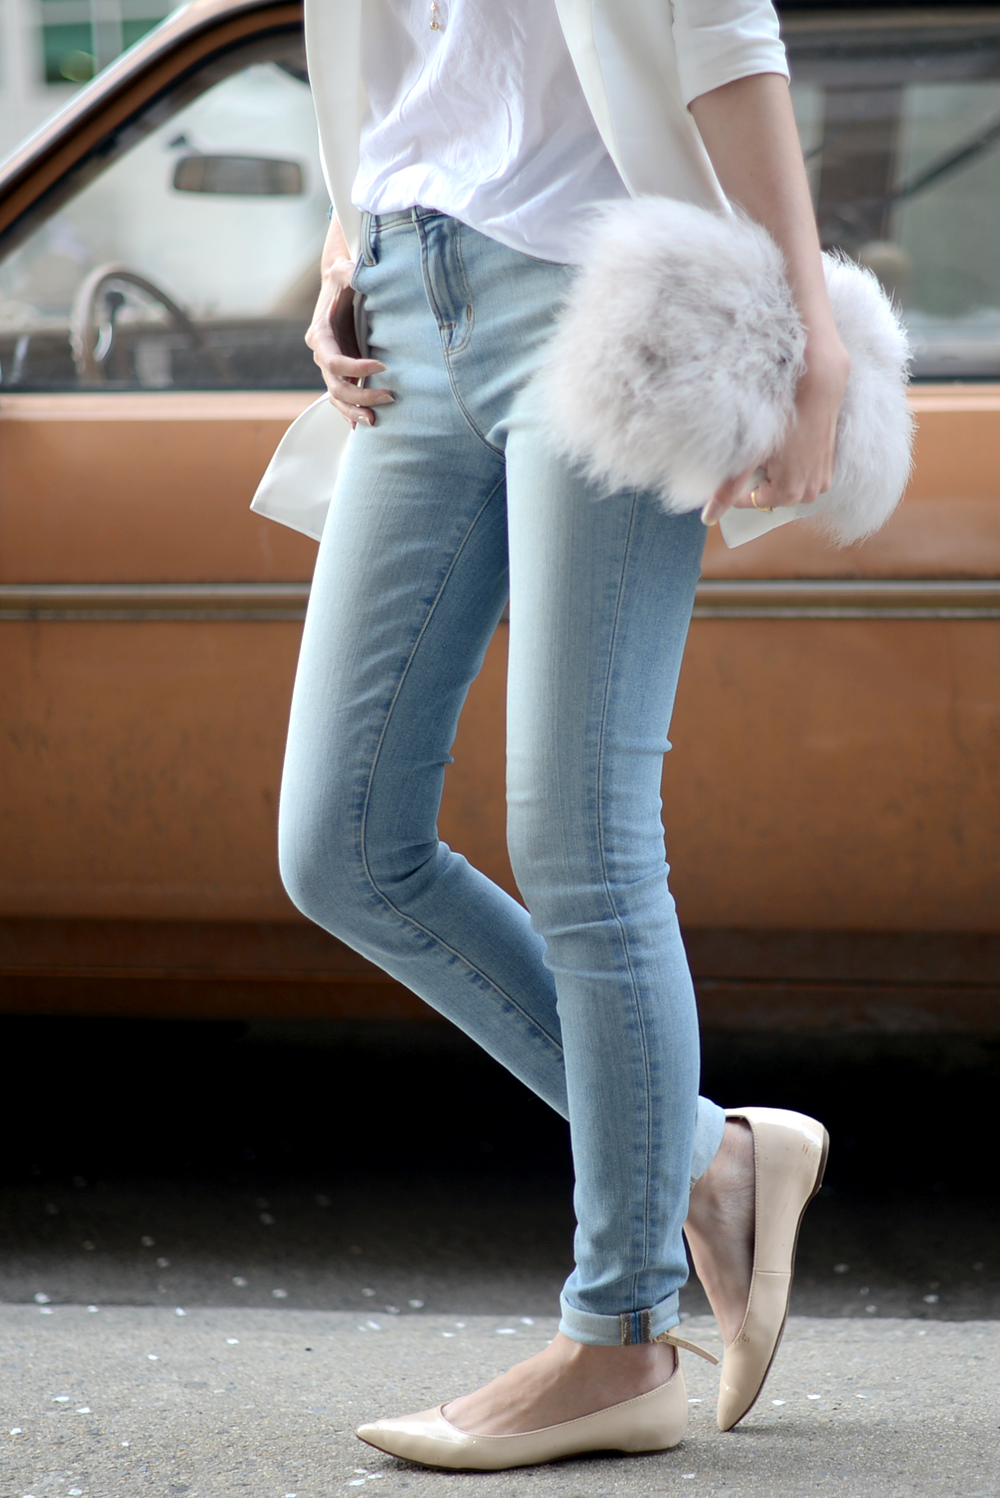 Classic - FOREVERVANNY / White Blazer, Summer Style, Fur Clutch